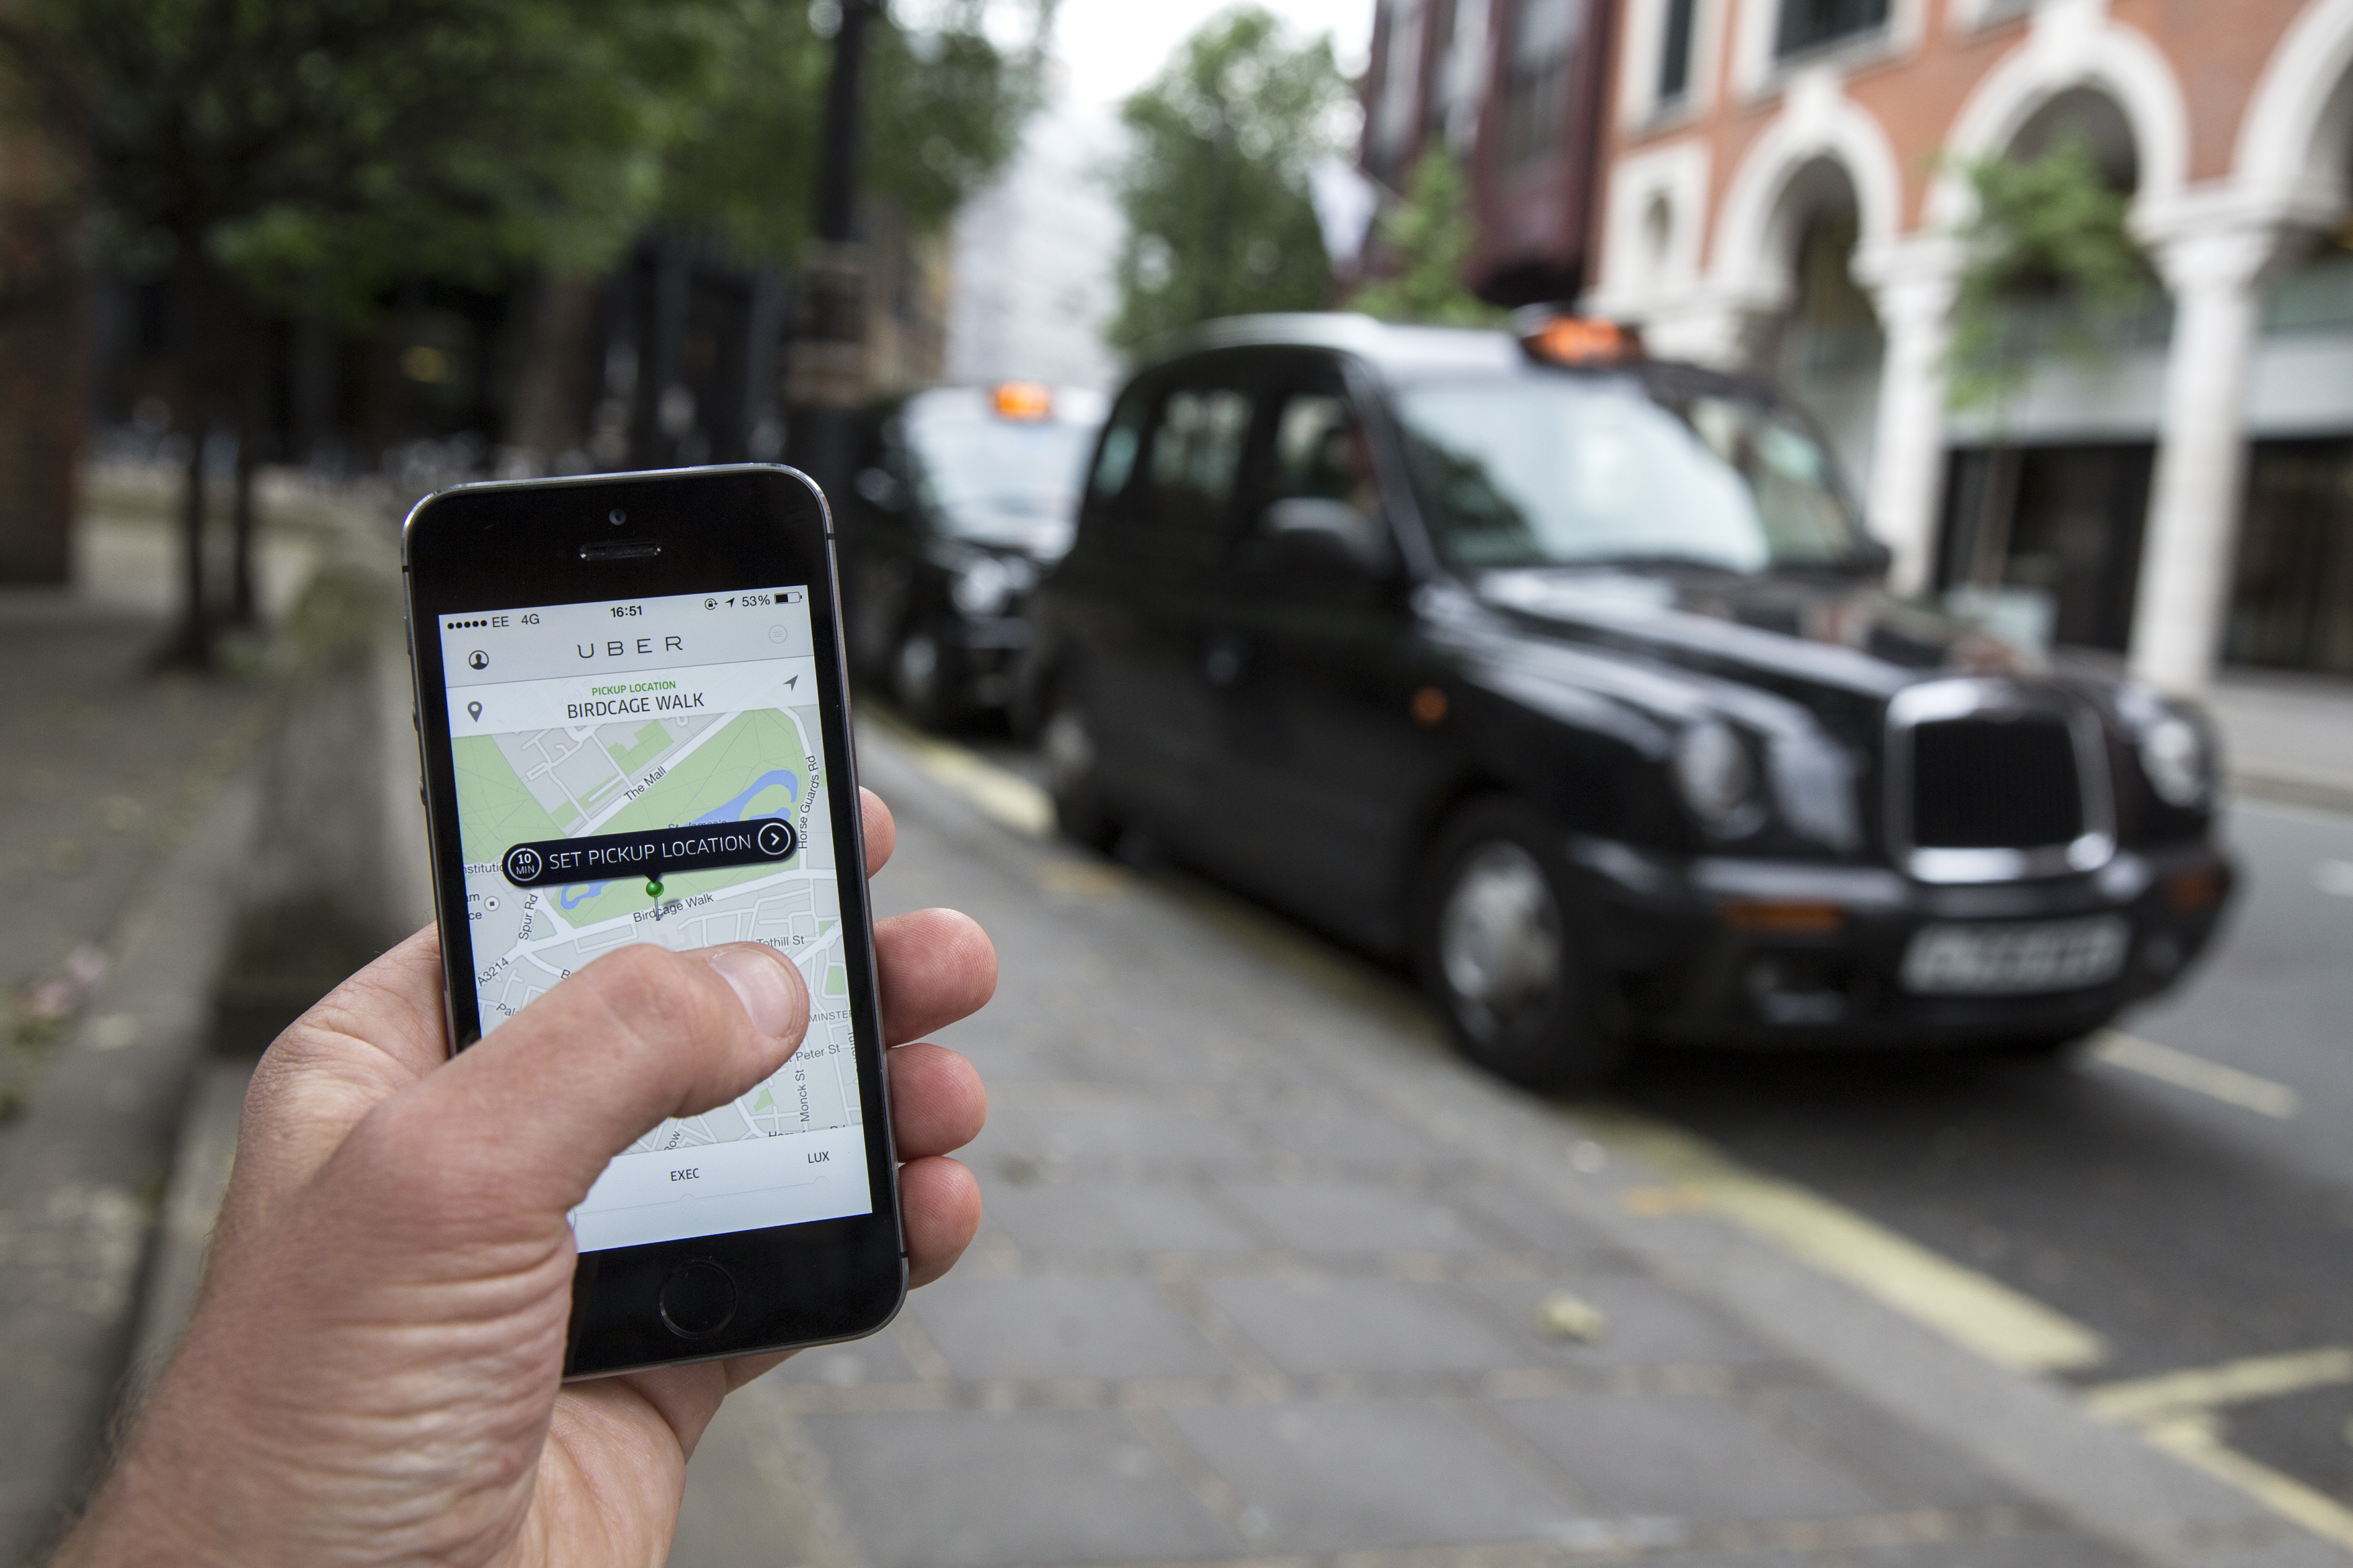 In this photo illustration, a smartphone displays the 'Uber' mobile application which allows users to hail private-hire cars from any location on June 2, 2014 in London, England. (Photo by Oli Scarff/Getty Images)